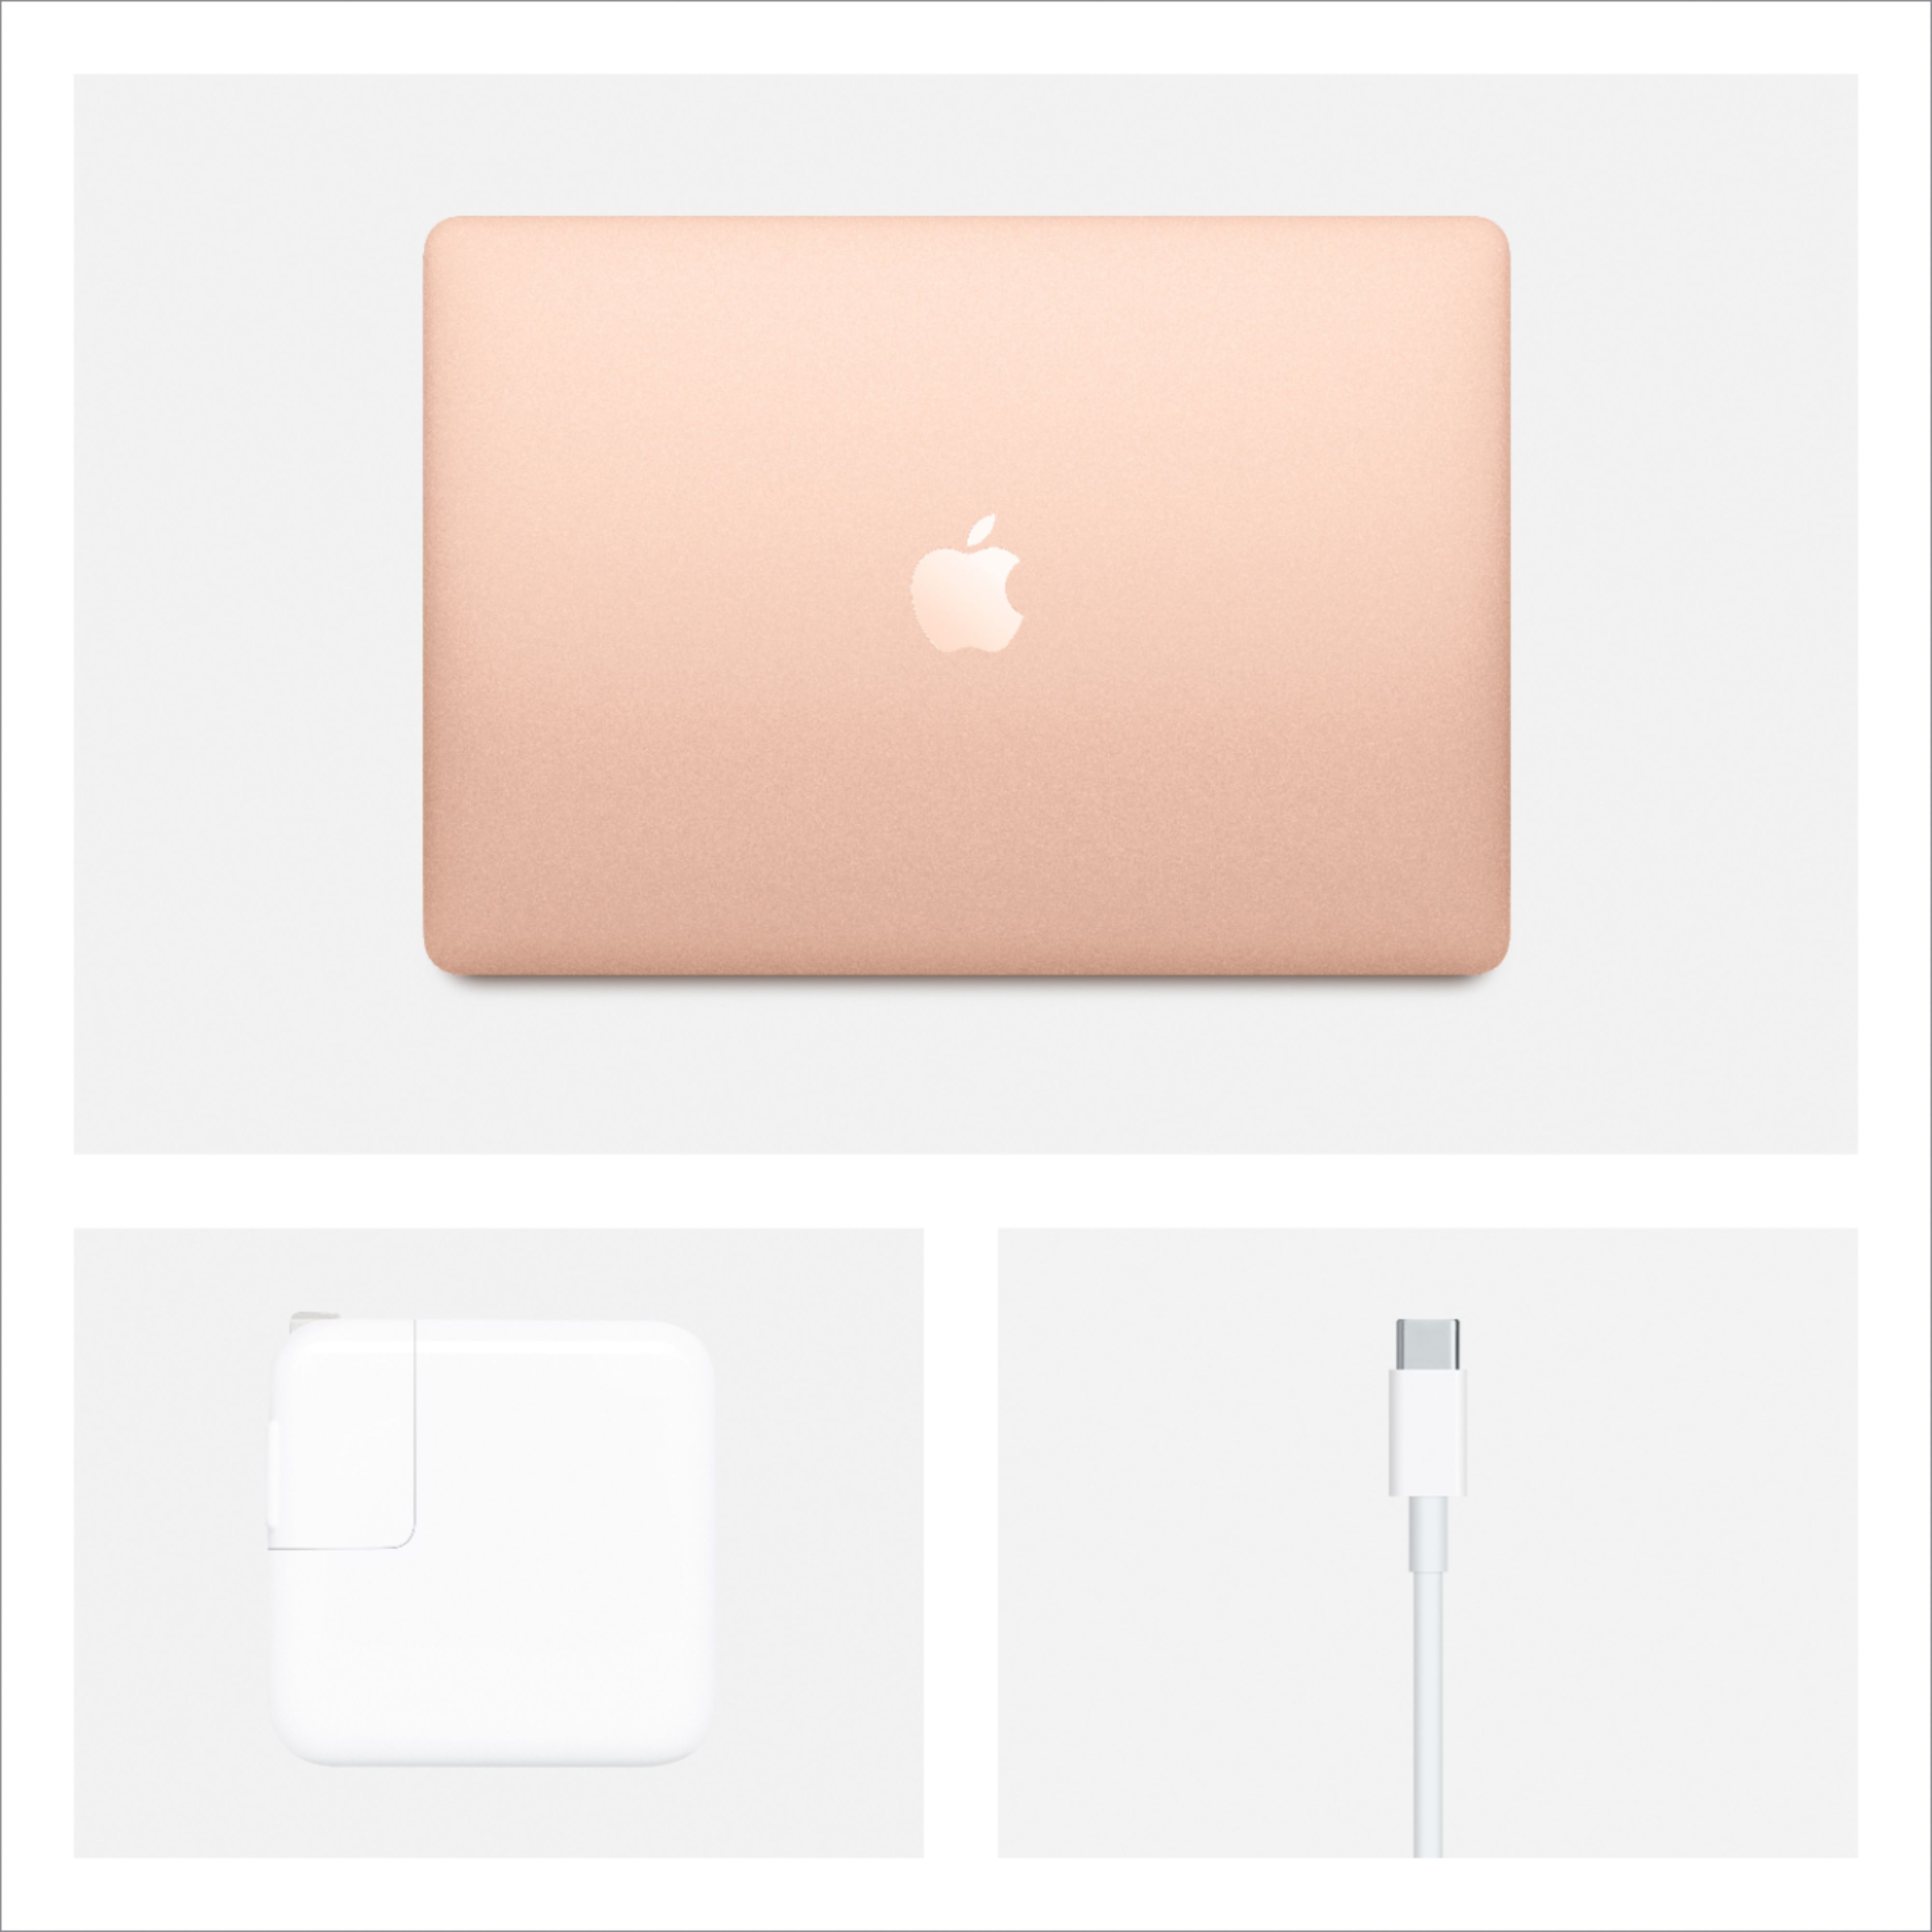 """Alt View Zoom 15. Apple - MacBook Air 13.3"""" Laptop with Touch ID - Intel Core i3 - 8GB Memory - 256GB Solid State Drive - Gold."""